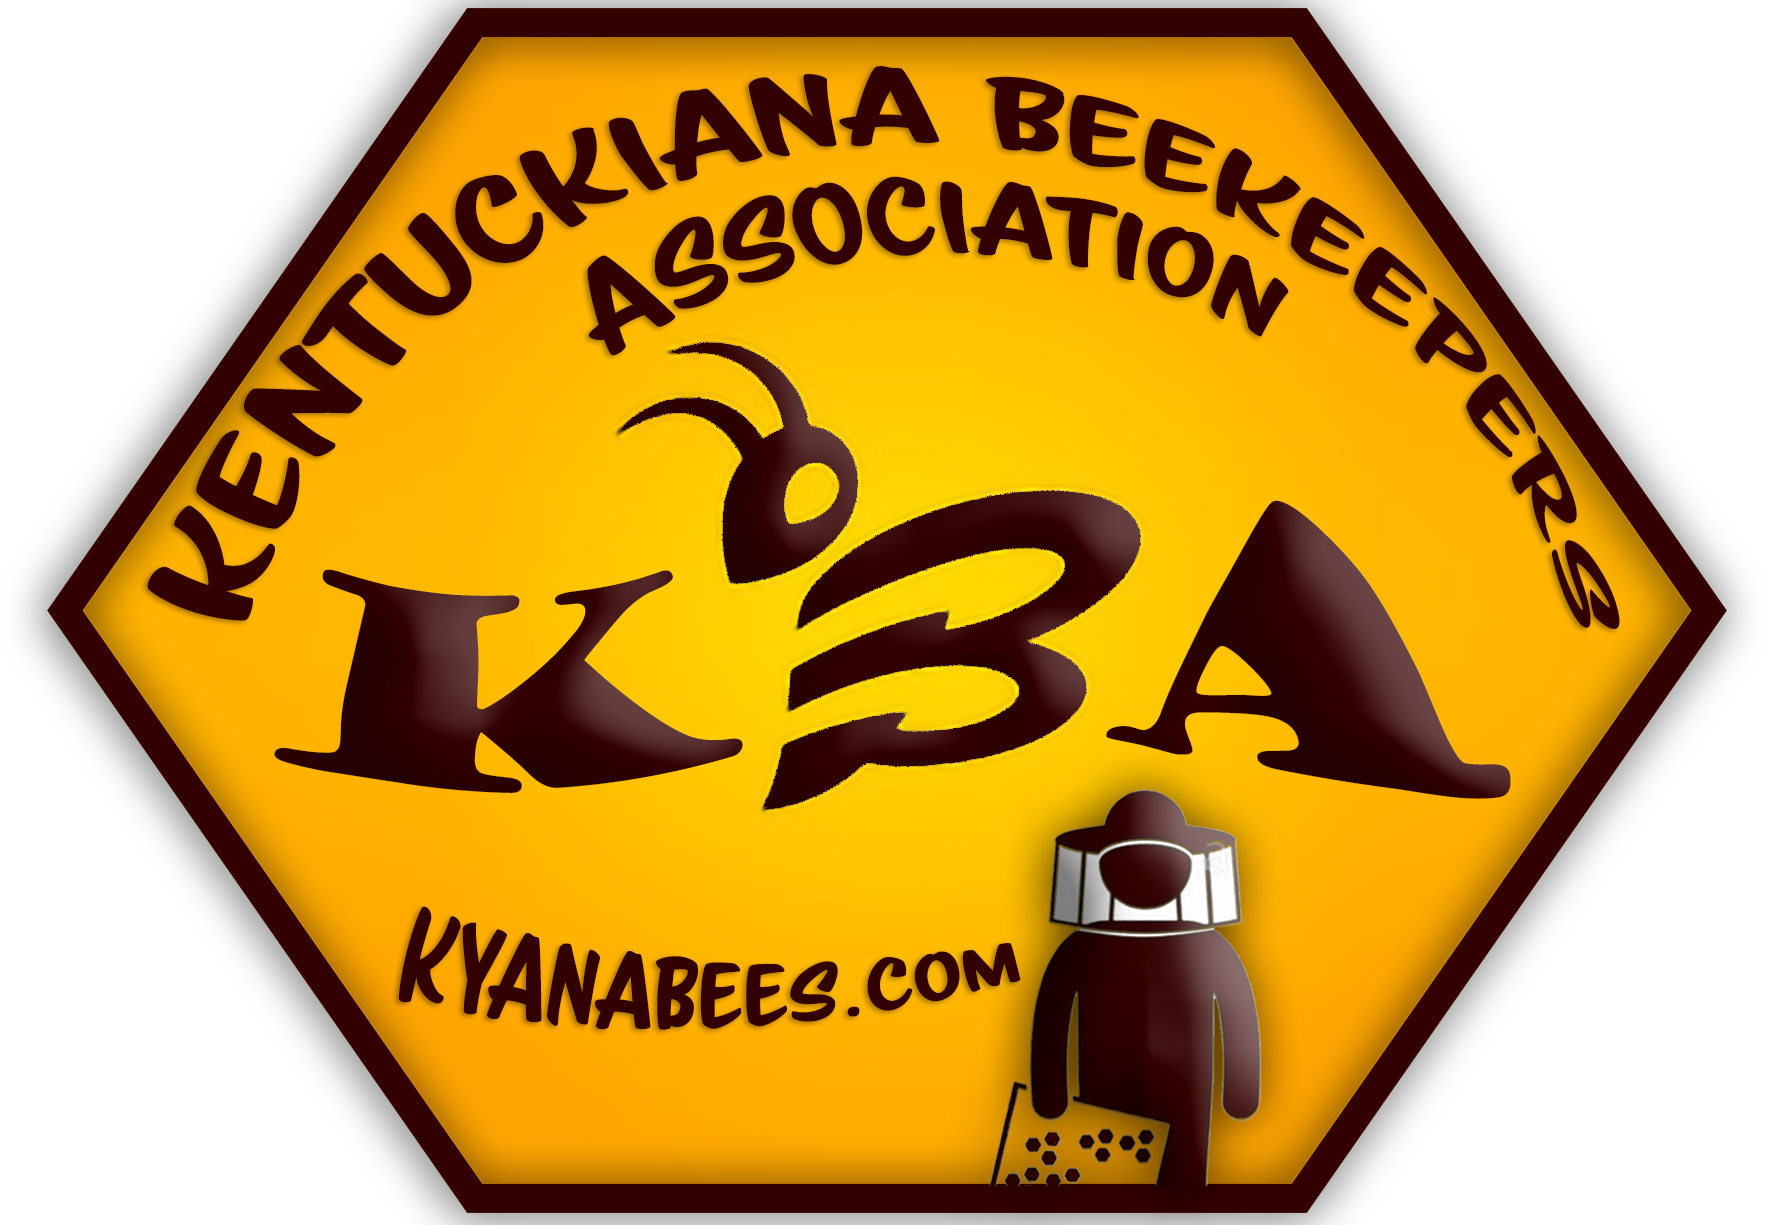 Kentuckiana Beekeepers Association